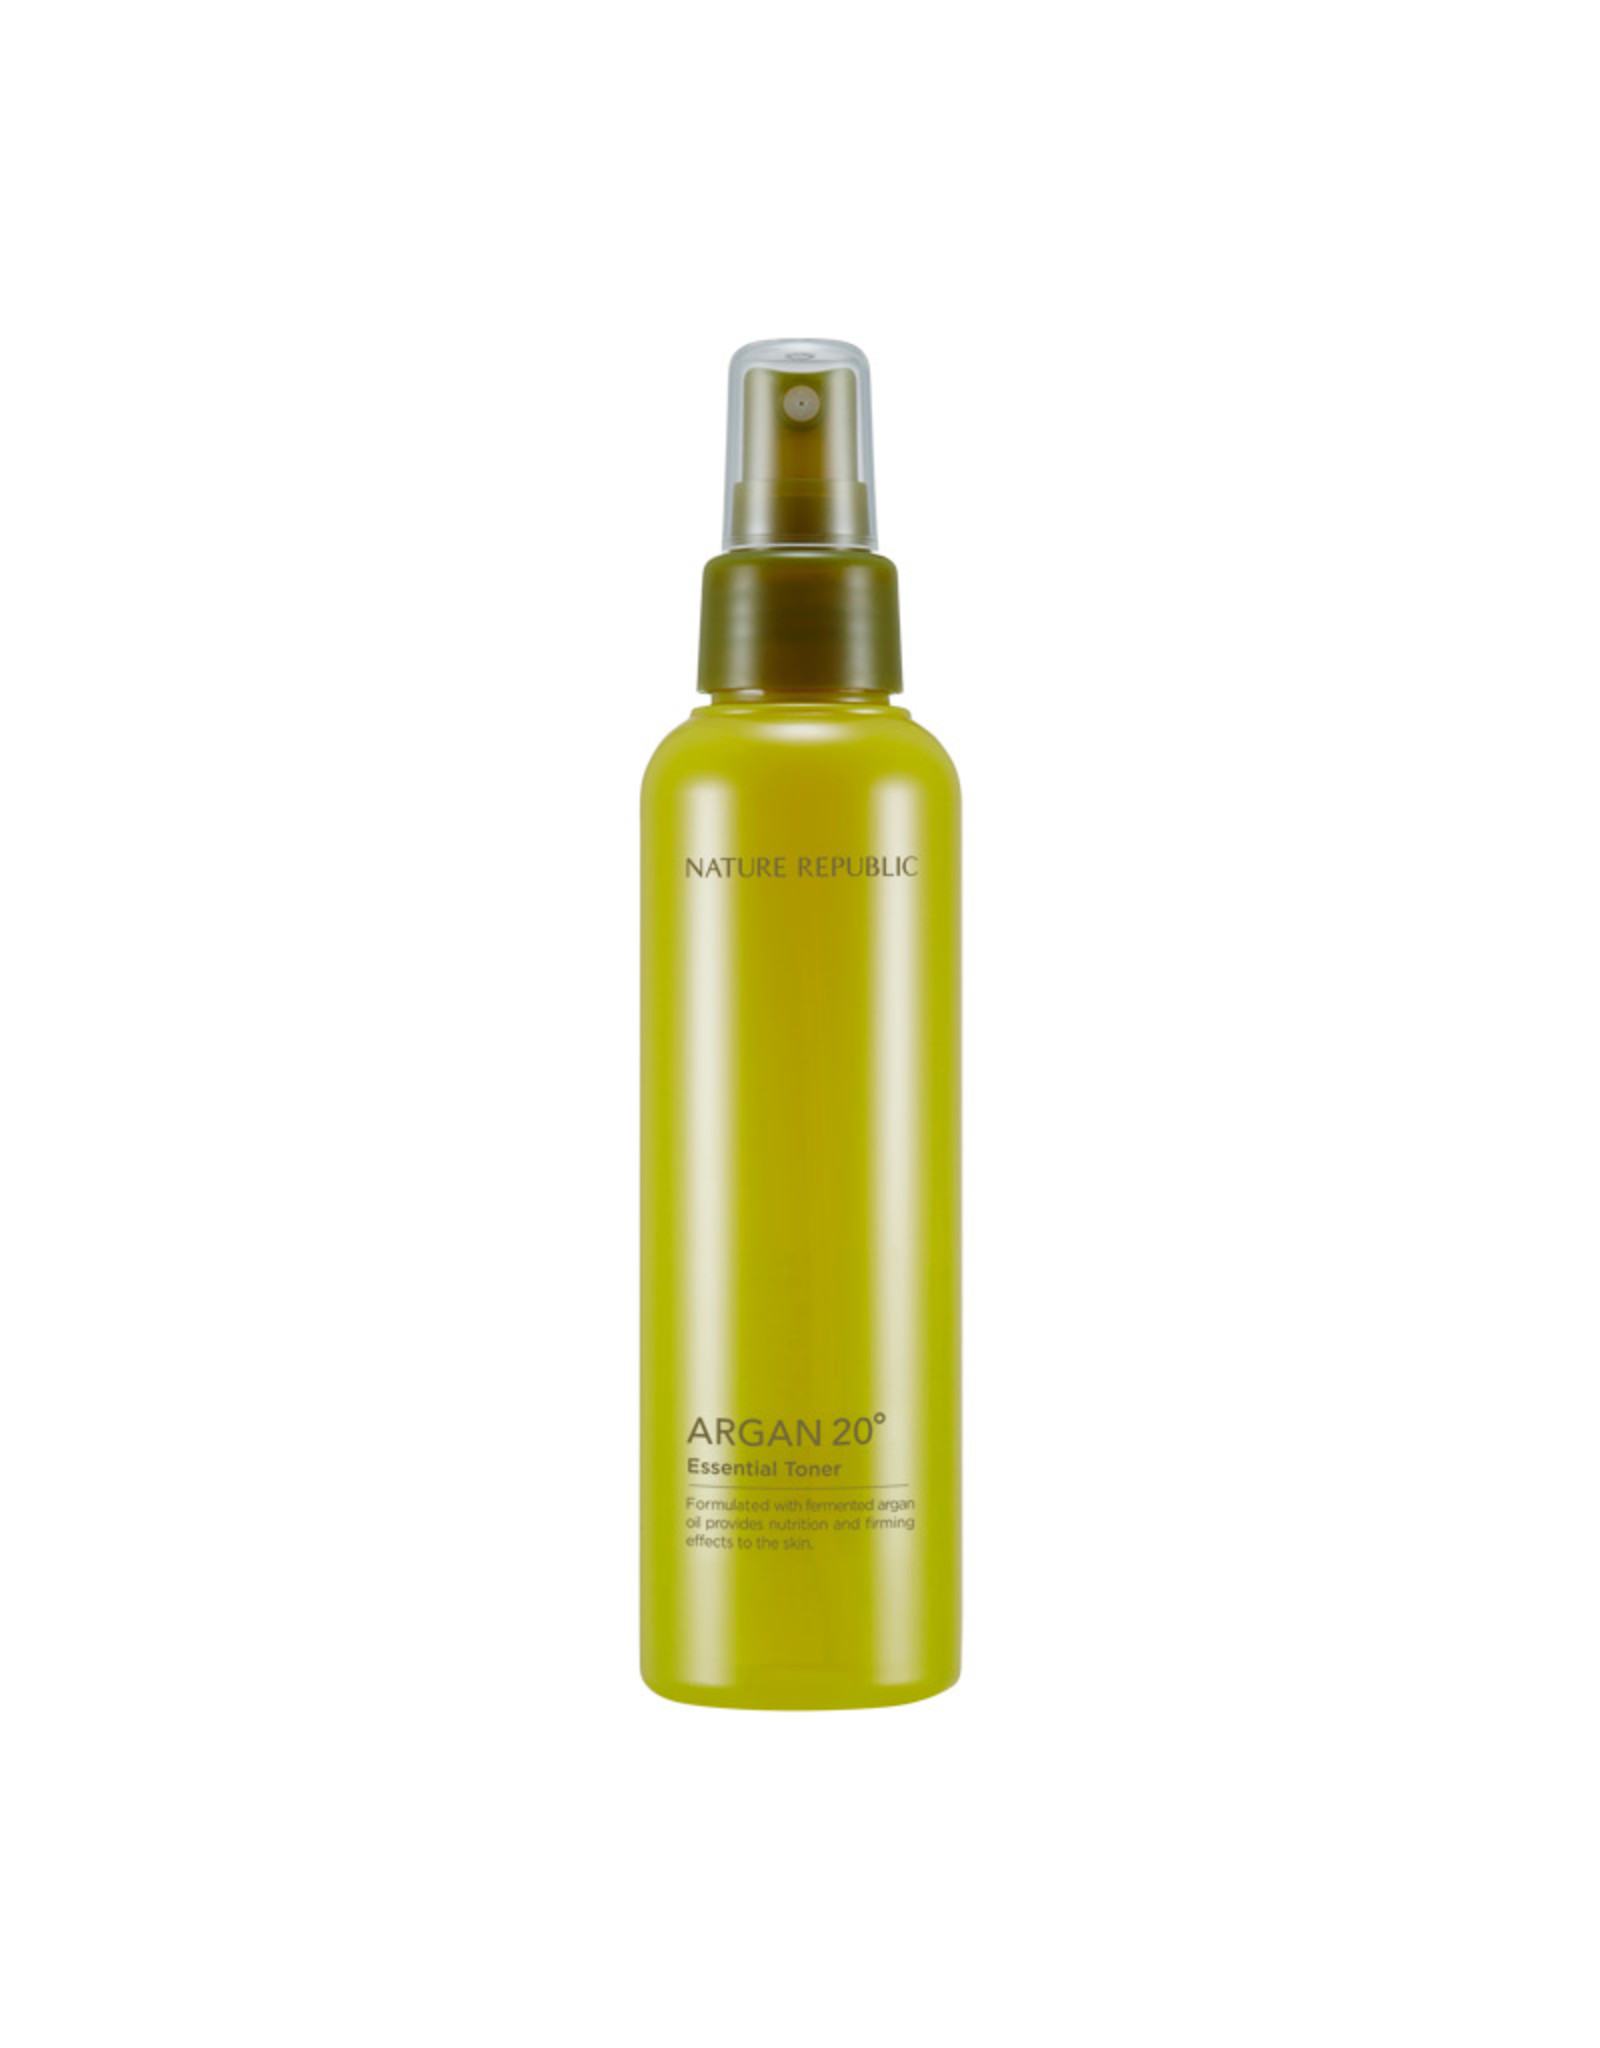 Argan 20º Essential Toner